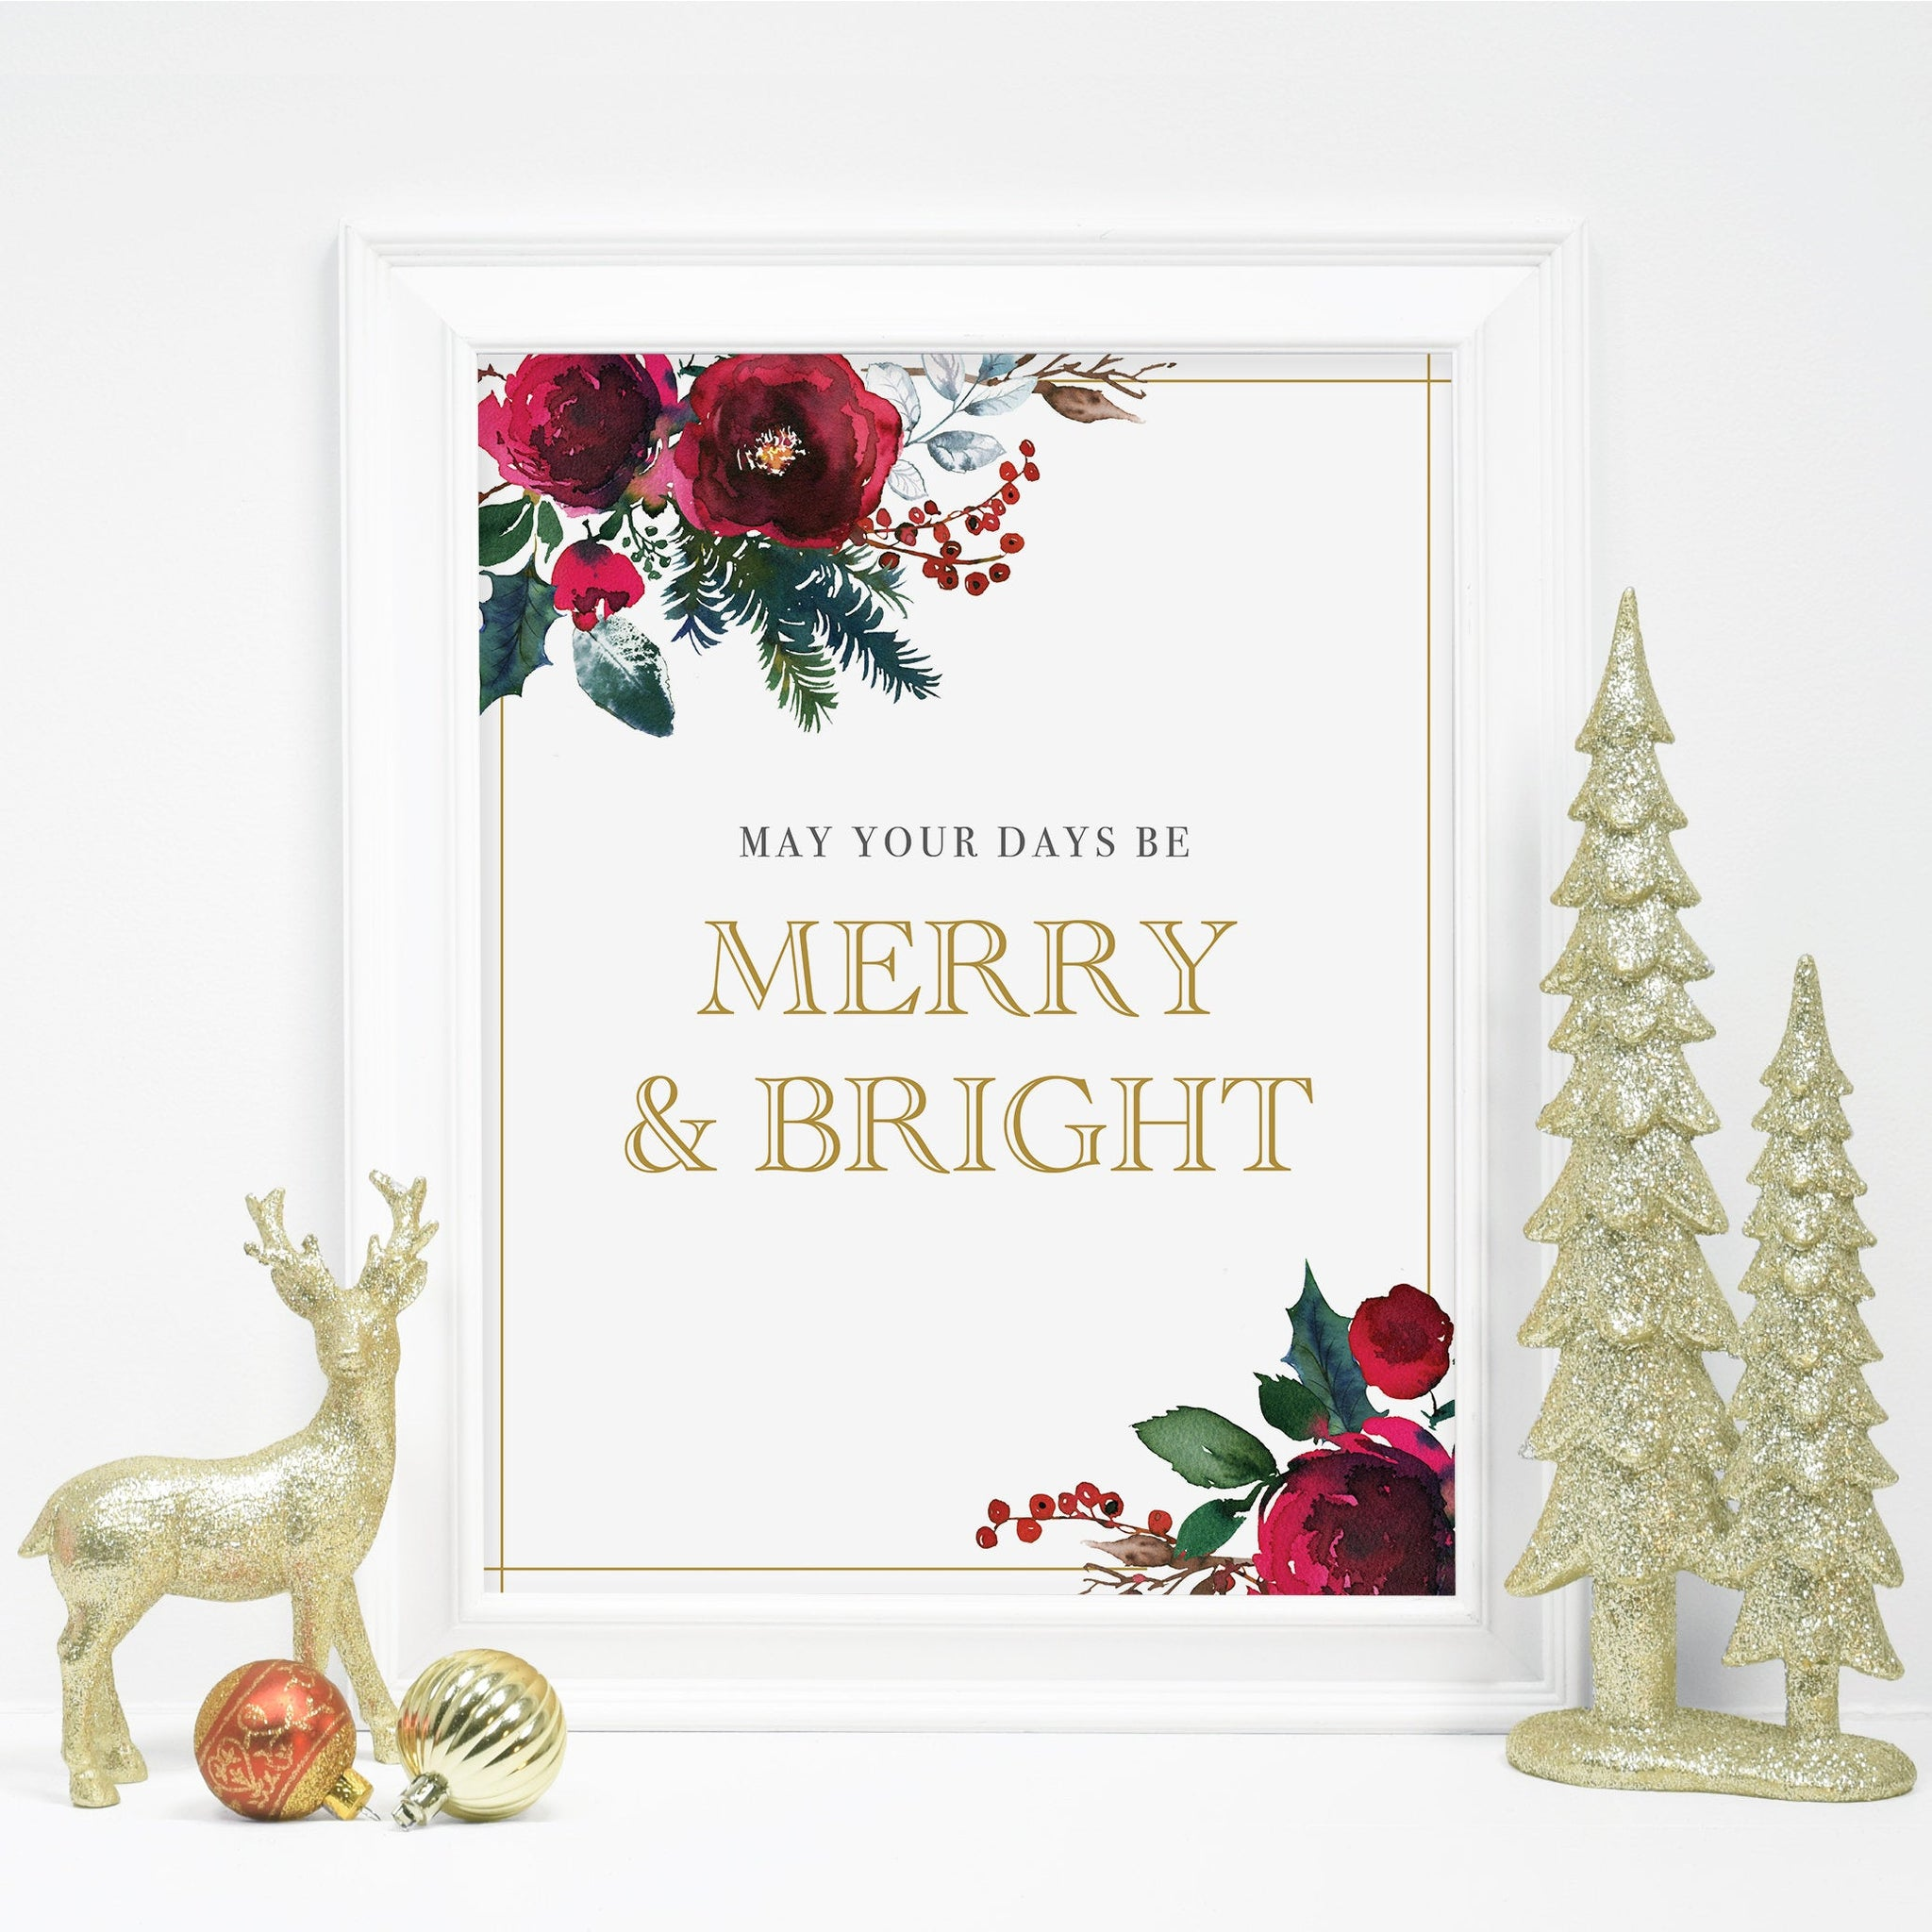 Merry and Bright Sign Printable, Holiday Decor, Holiday Party Printable Decorations, Holiday Party Decor, INSTANT DOWNLOAD - CG100 - @PlumPolkaDot